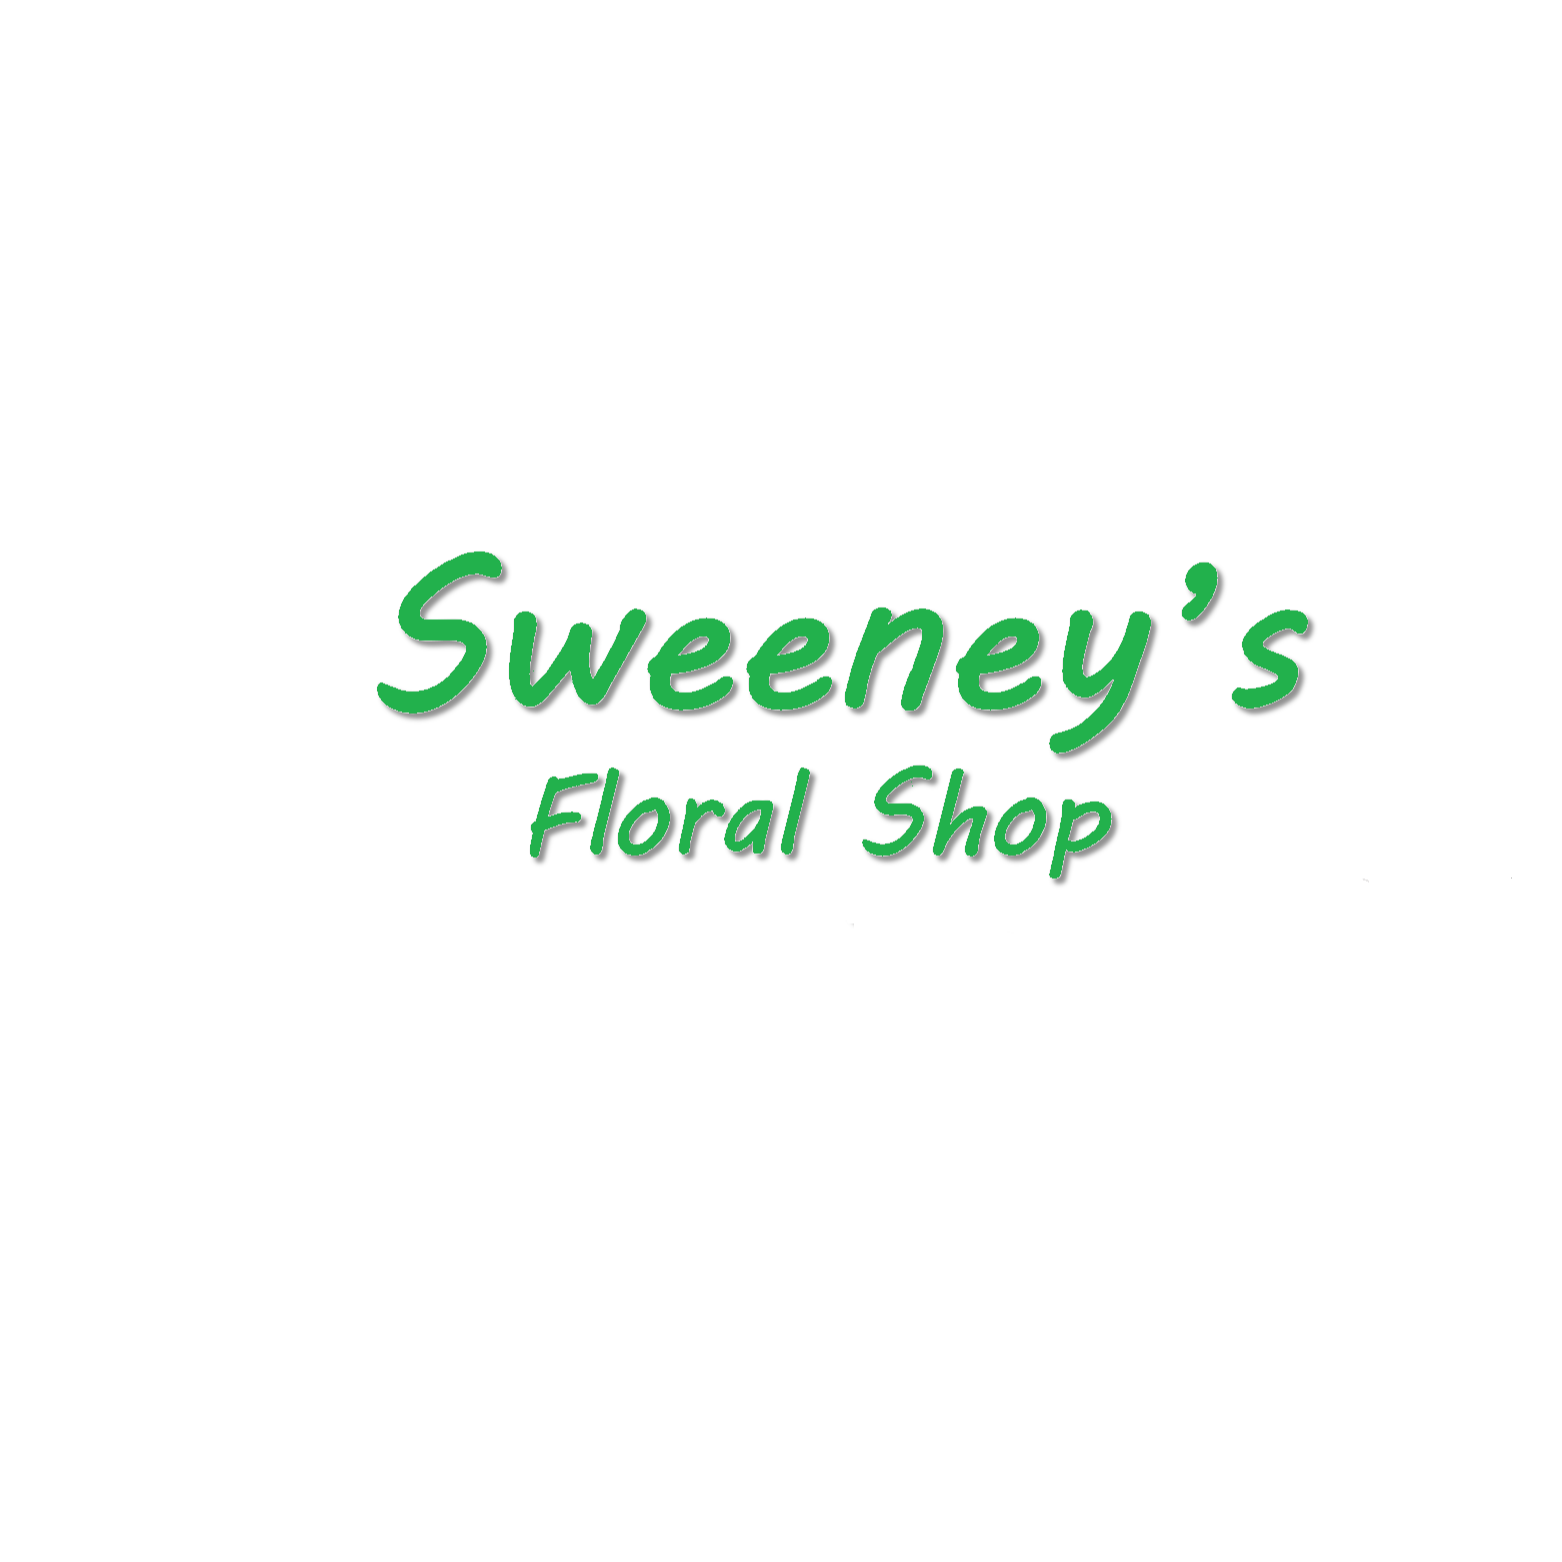 Sweeney's Floral Shop & Greenhouse Logo